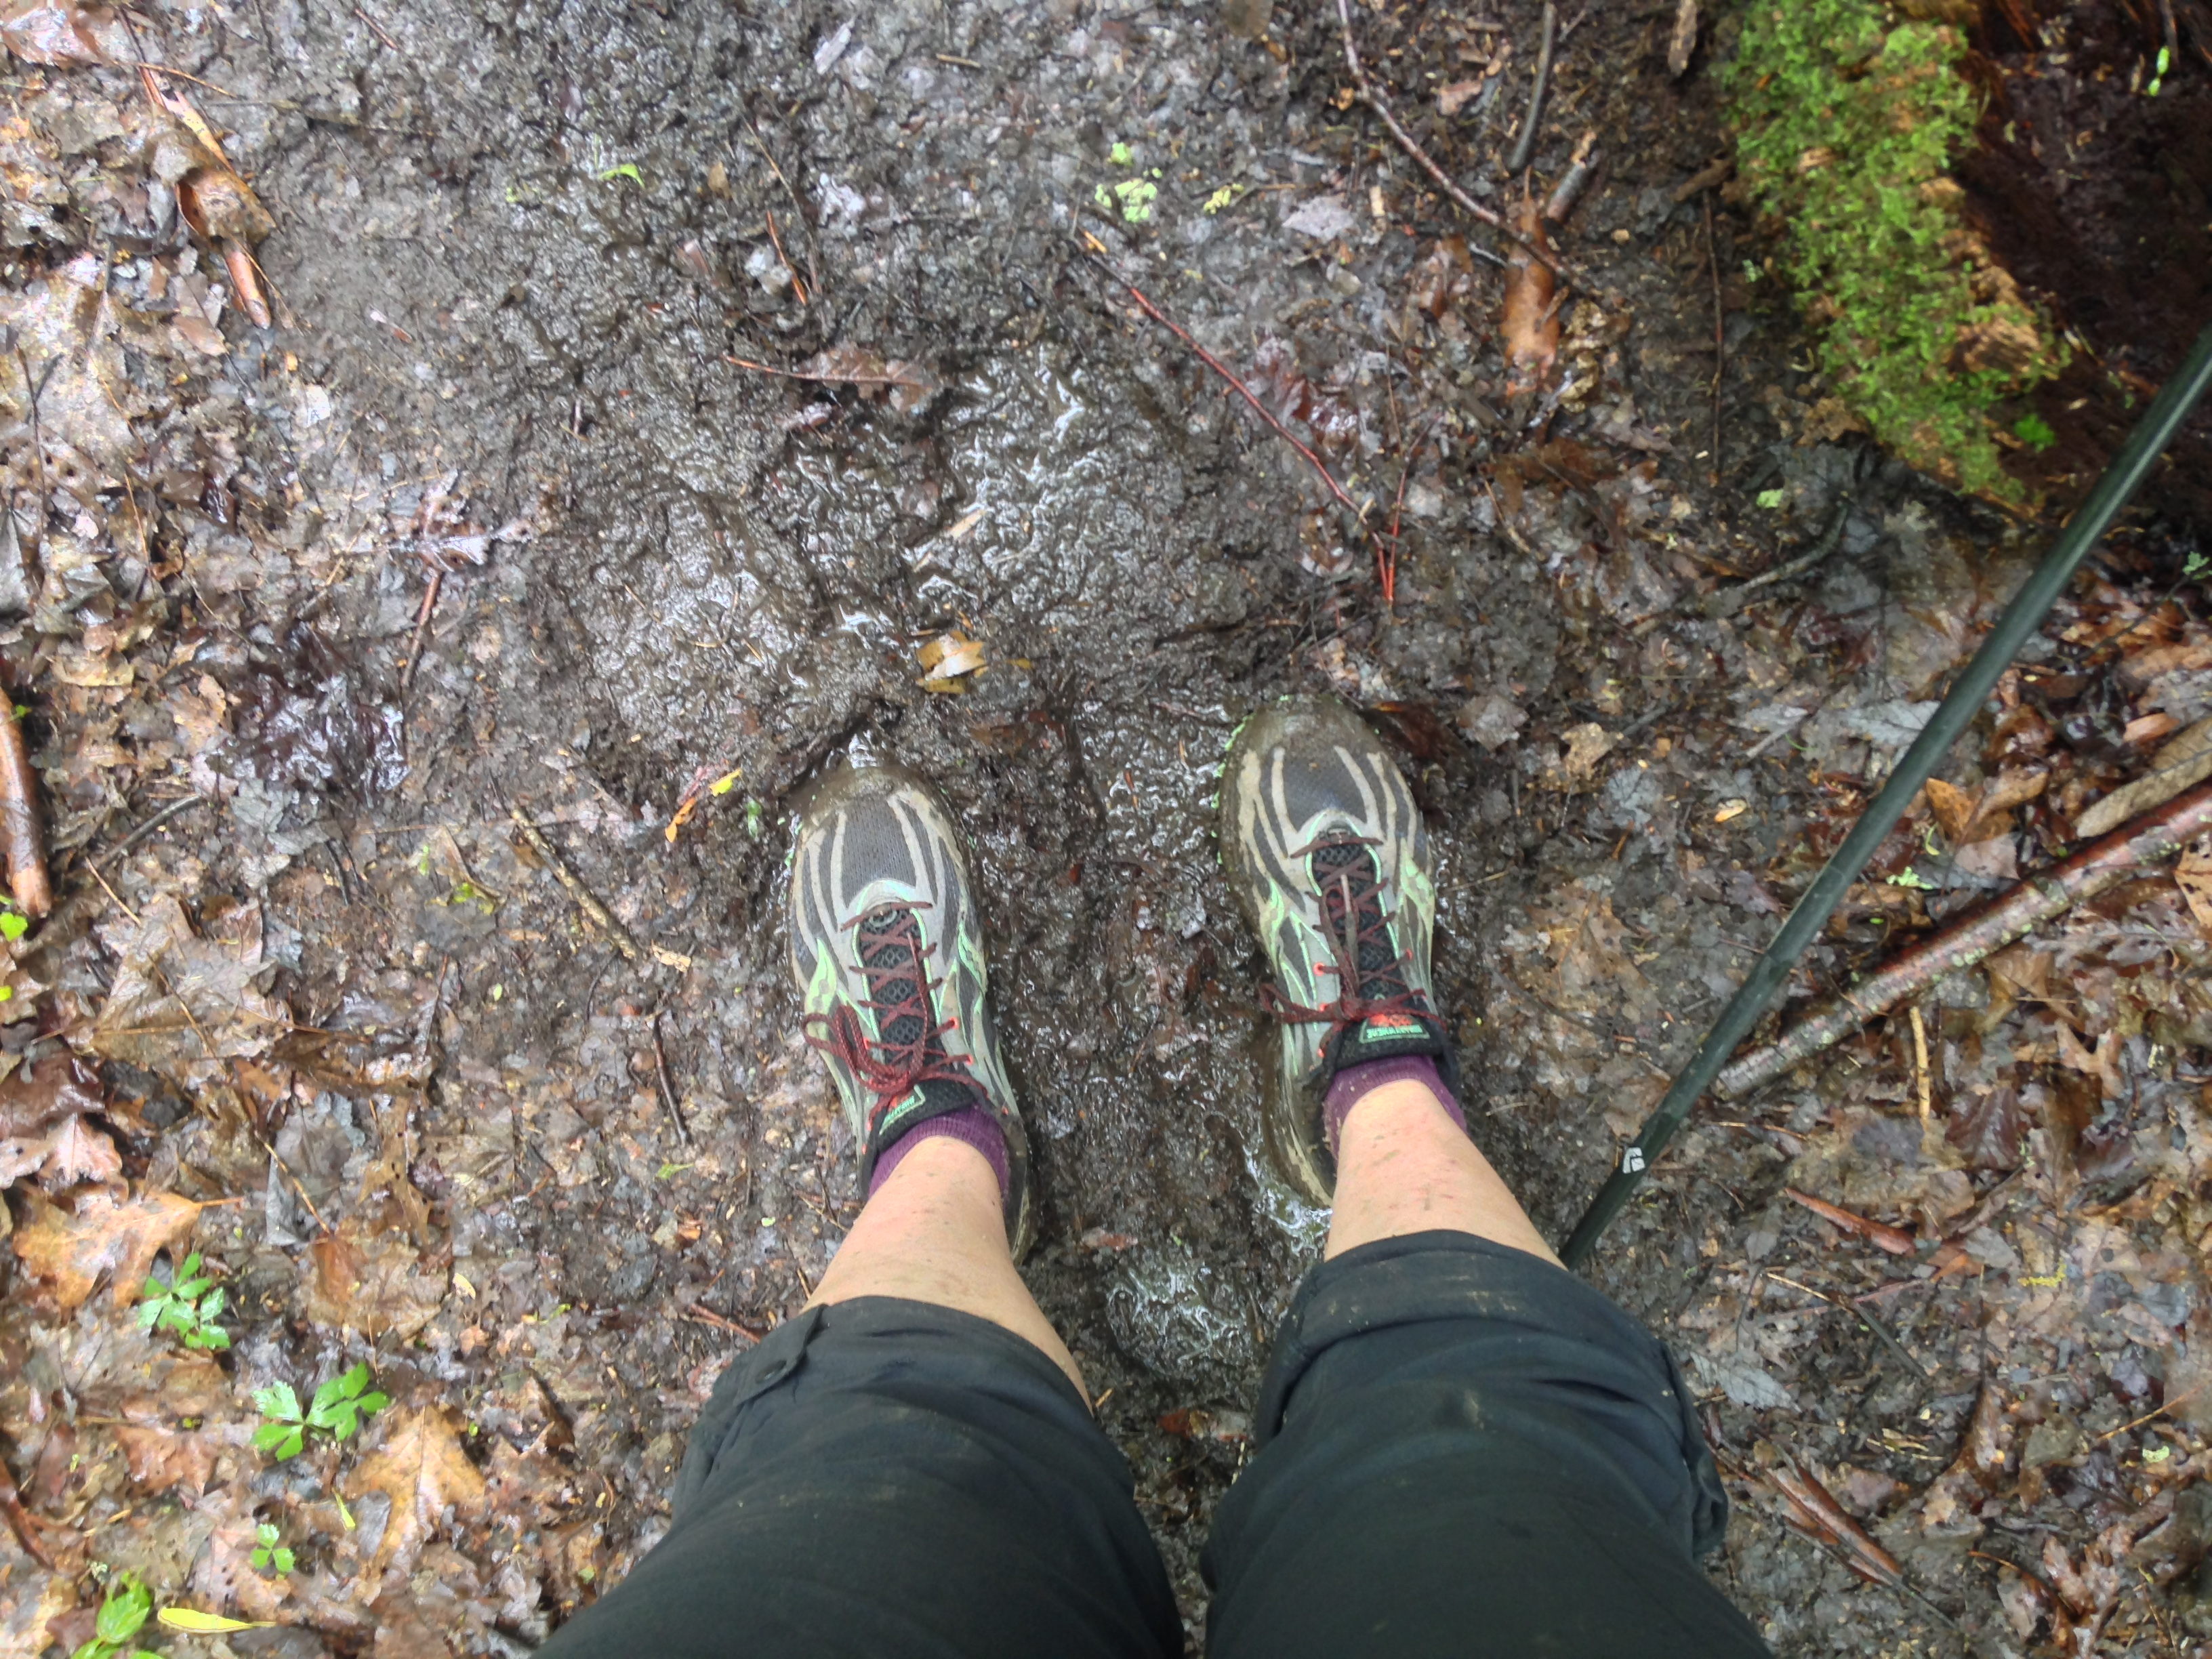 This was early on. Later my shoes were just mud balls.